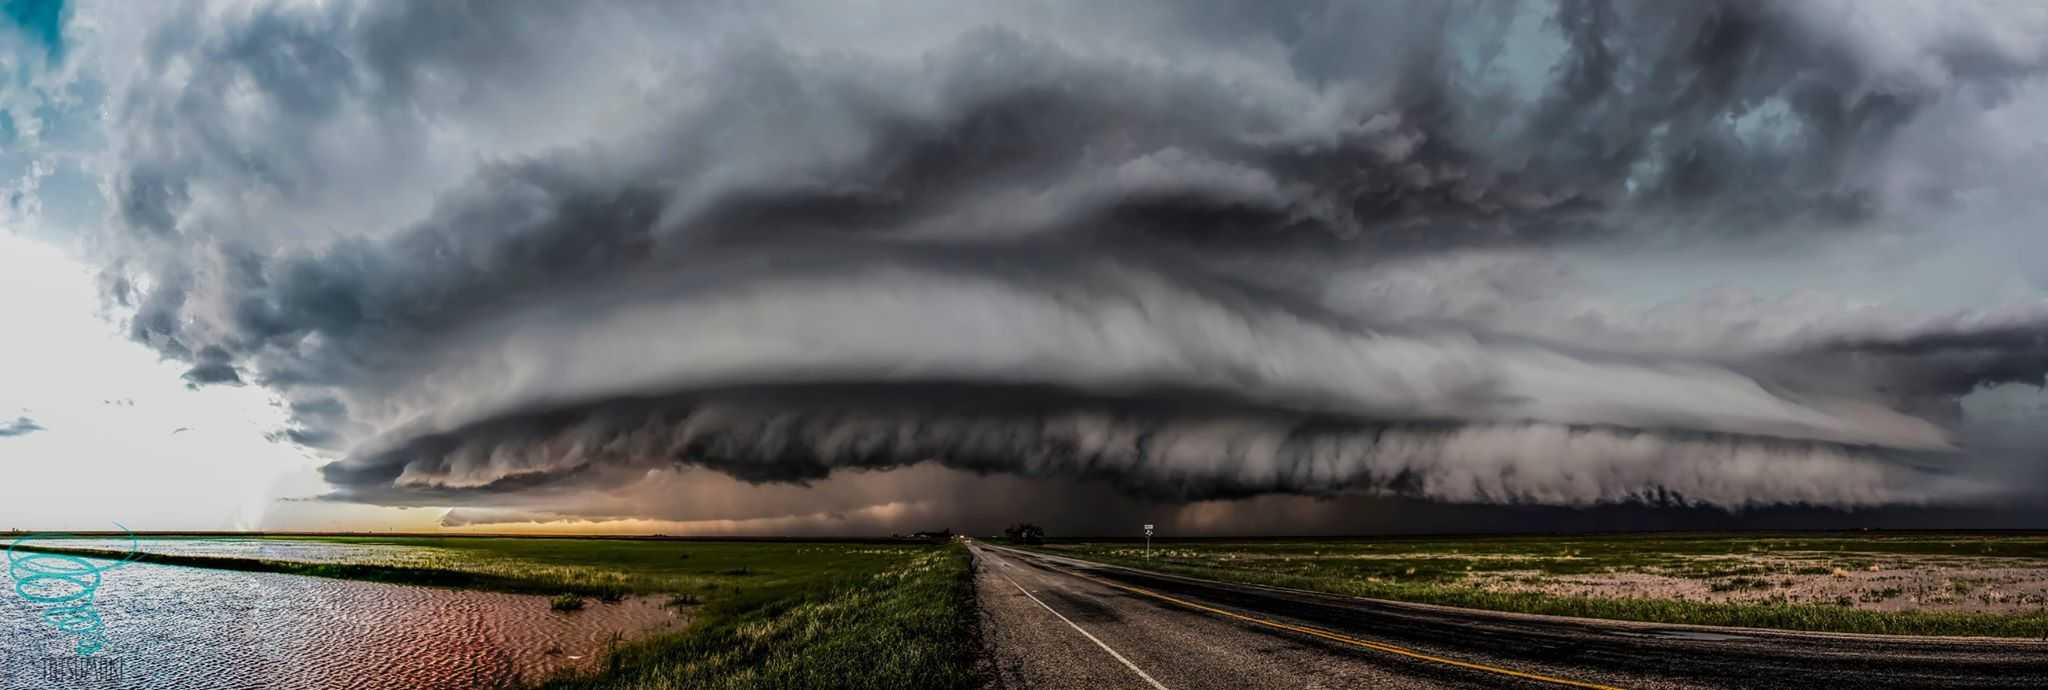 A tornado warned supercell south of Crosbyton, Texas begins to gust out after producing two tornadoes and creates a crisp shelf cloud on May 5, 2015.